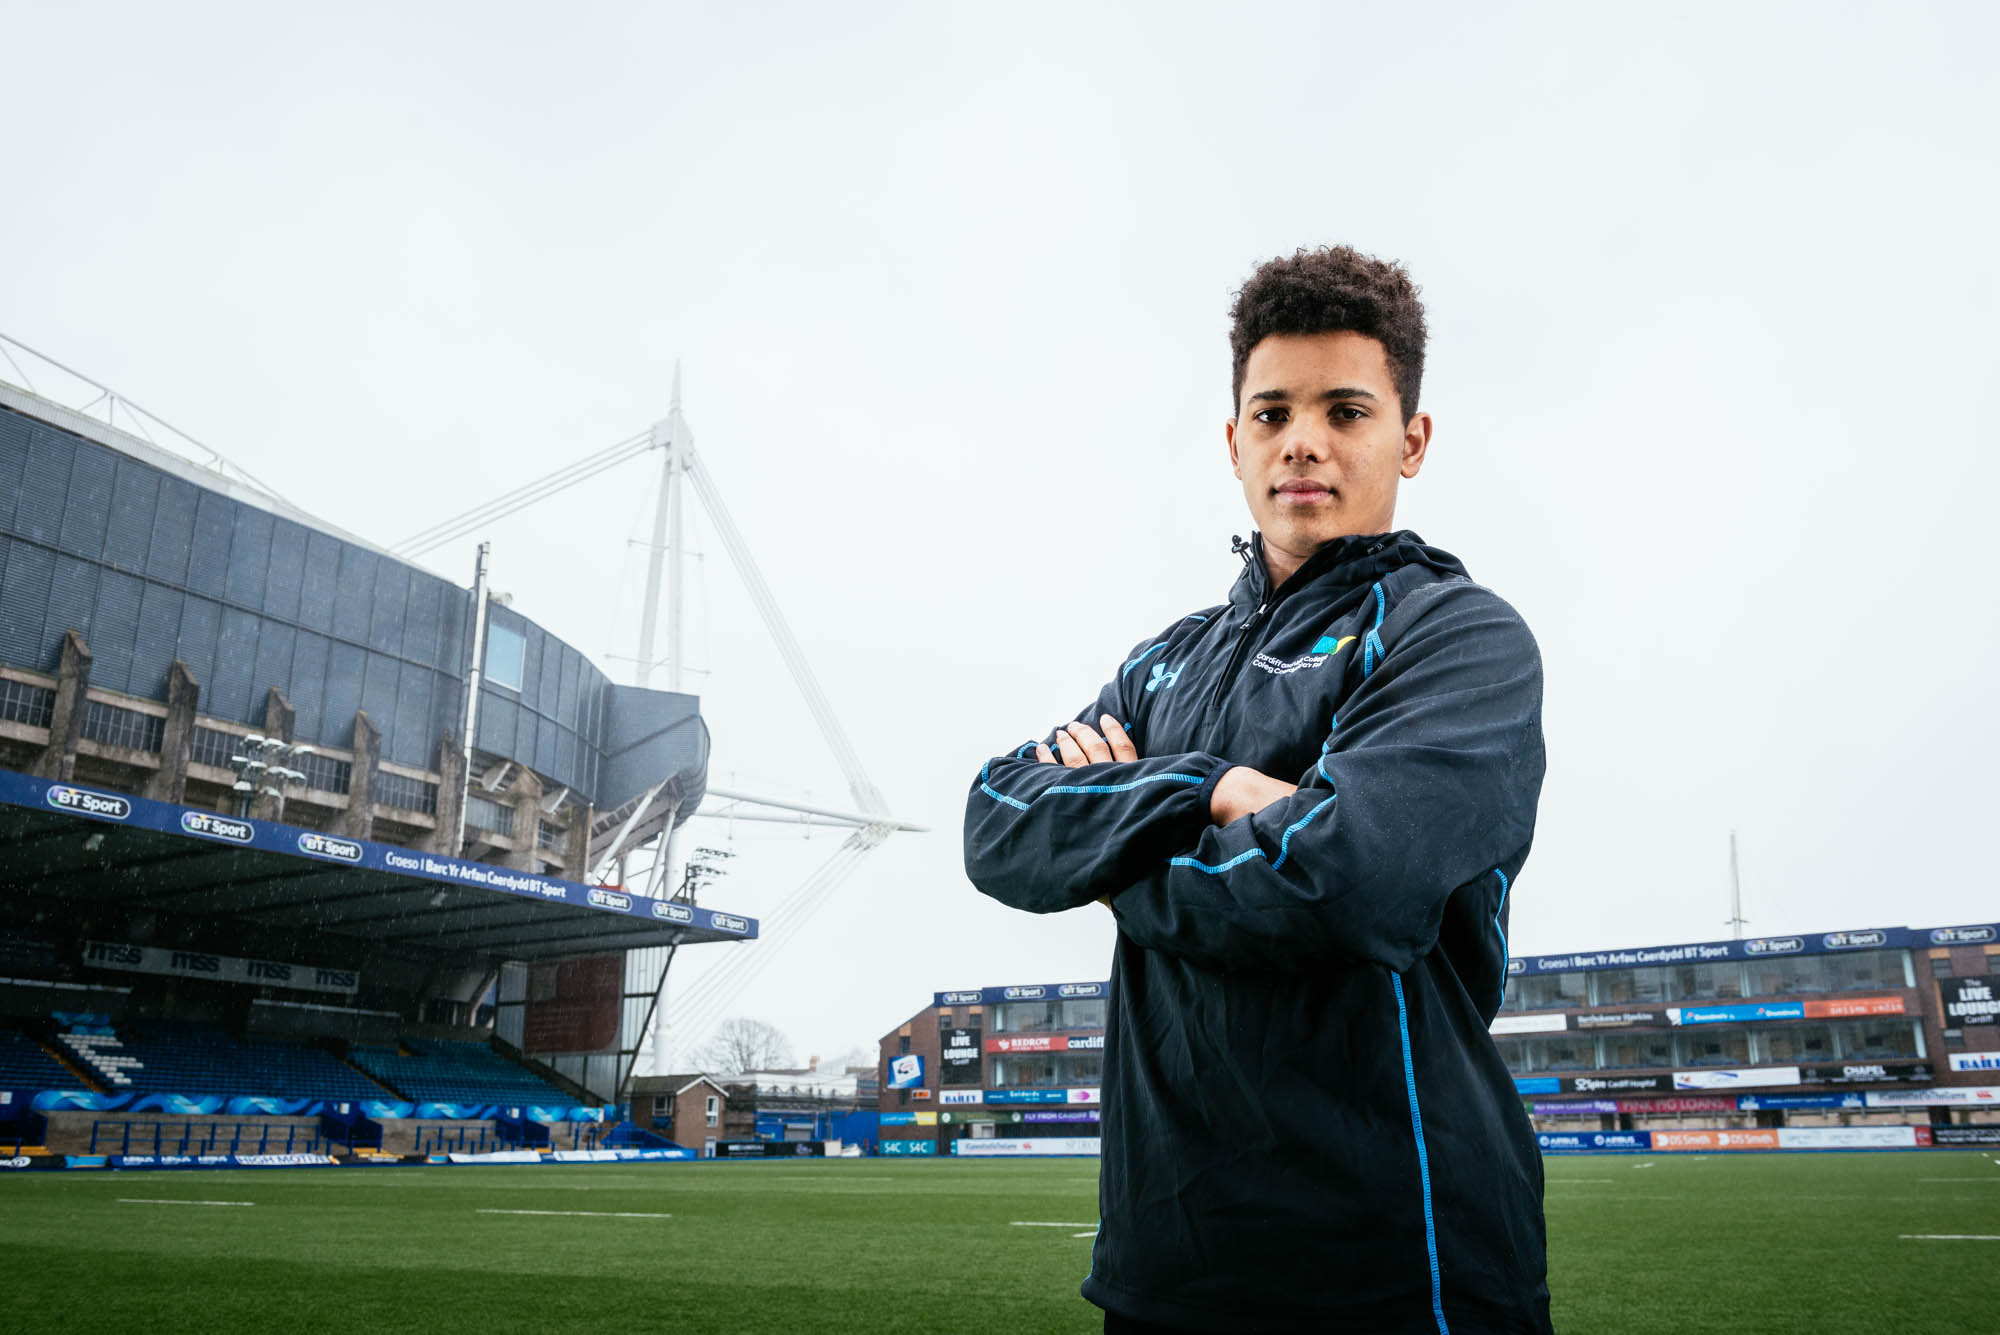 A photo of a rugby player at the arms park in cardiff with the millennium stadium behind